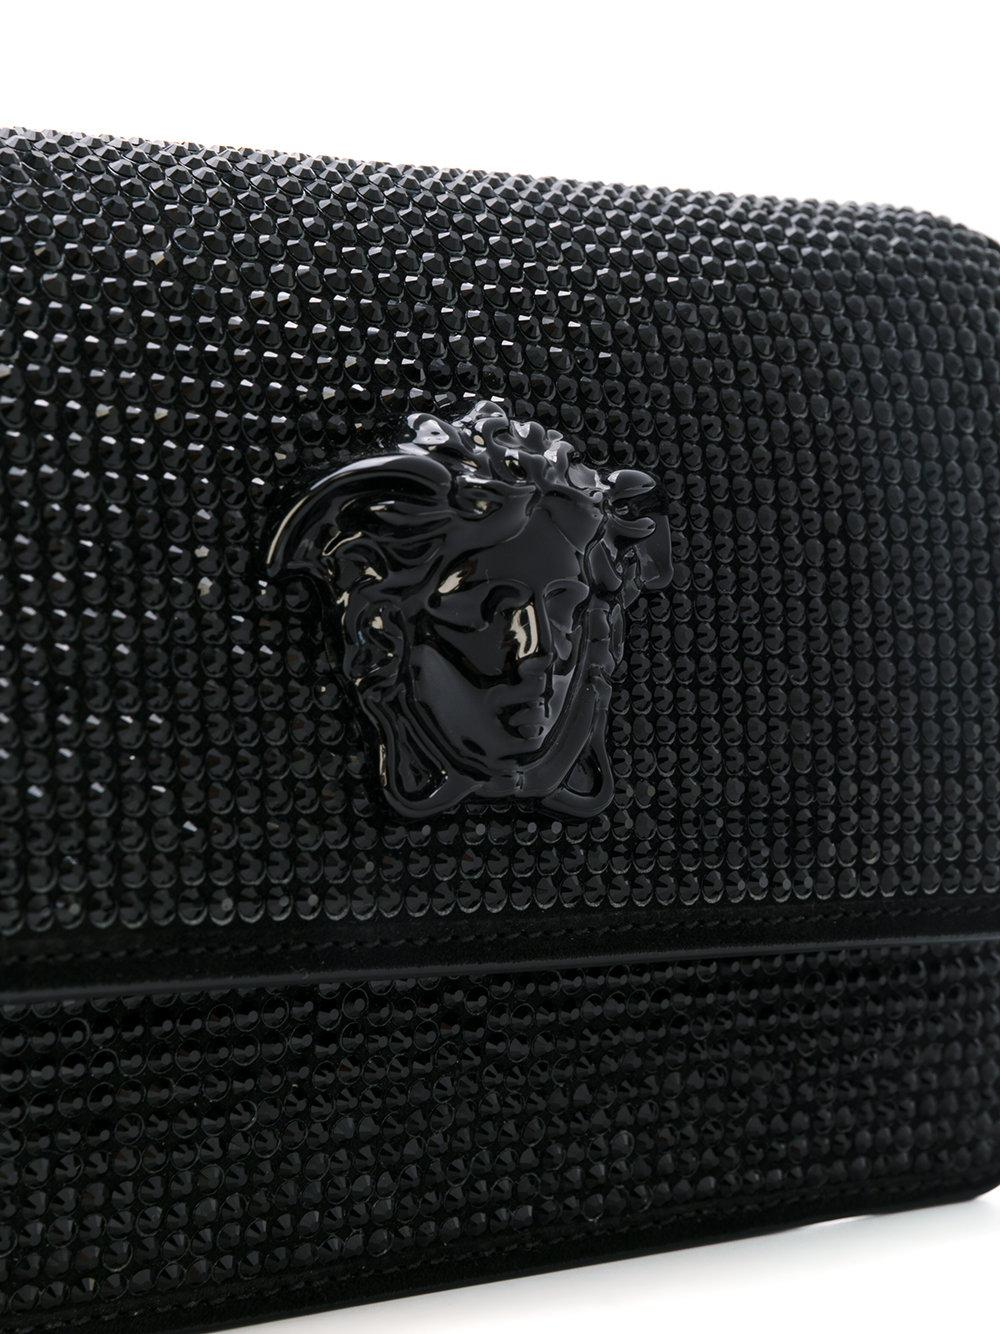 a50b5c4ac643 Versace Crystal-embellished Medusa Palazzo Shoulder Bag in Black - Lyst